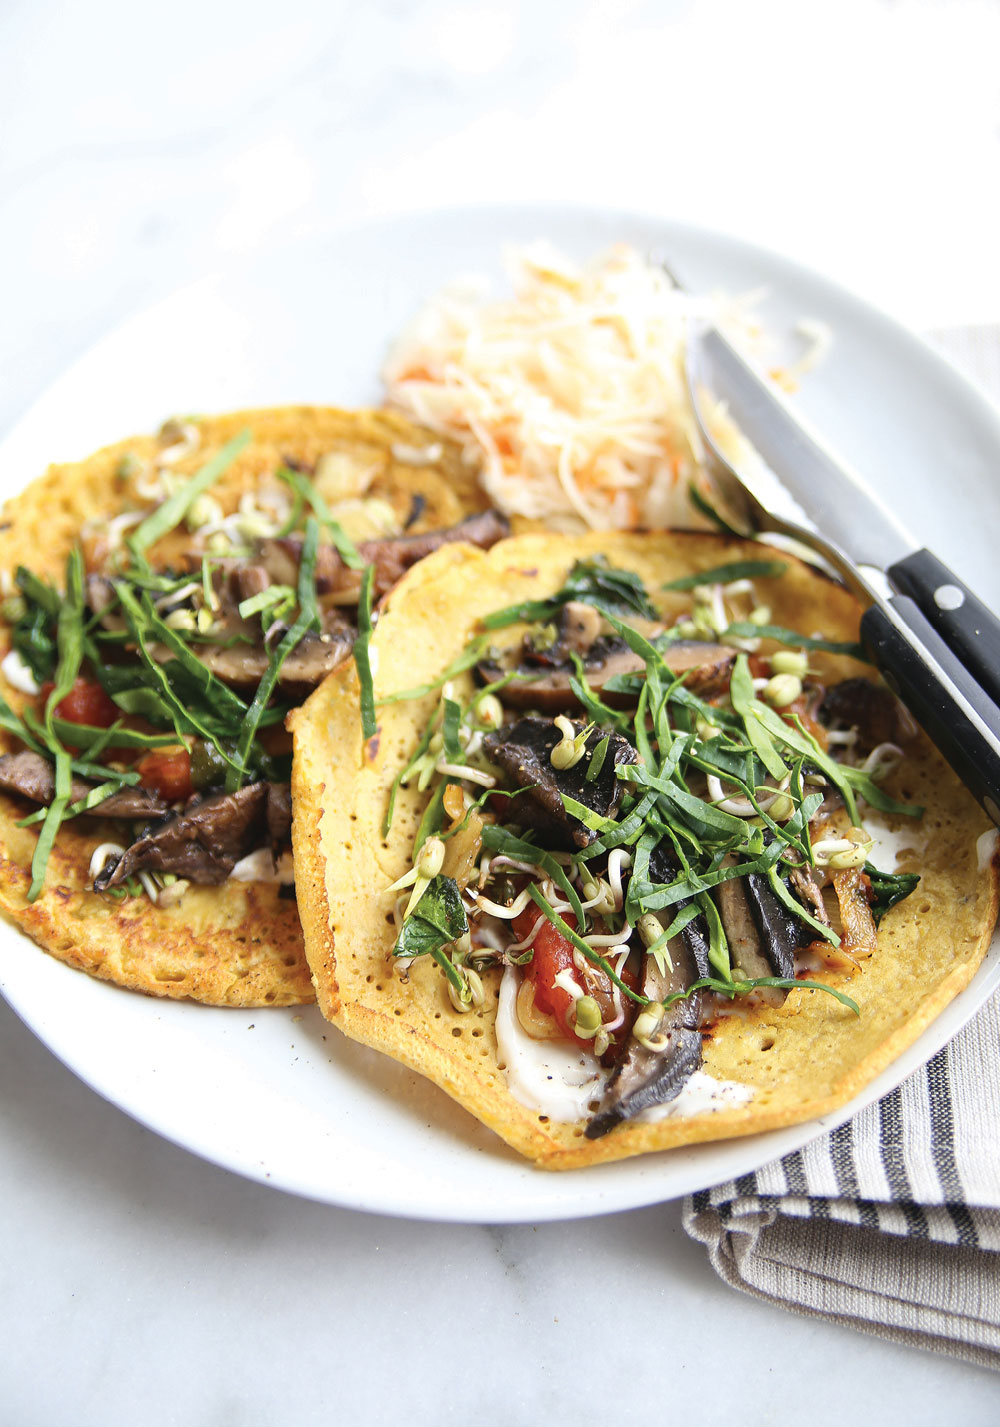 Pure-Ella-Socca-Vegan-Gluten-free-Chickpea-Crepes-with-Portabellos4